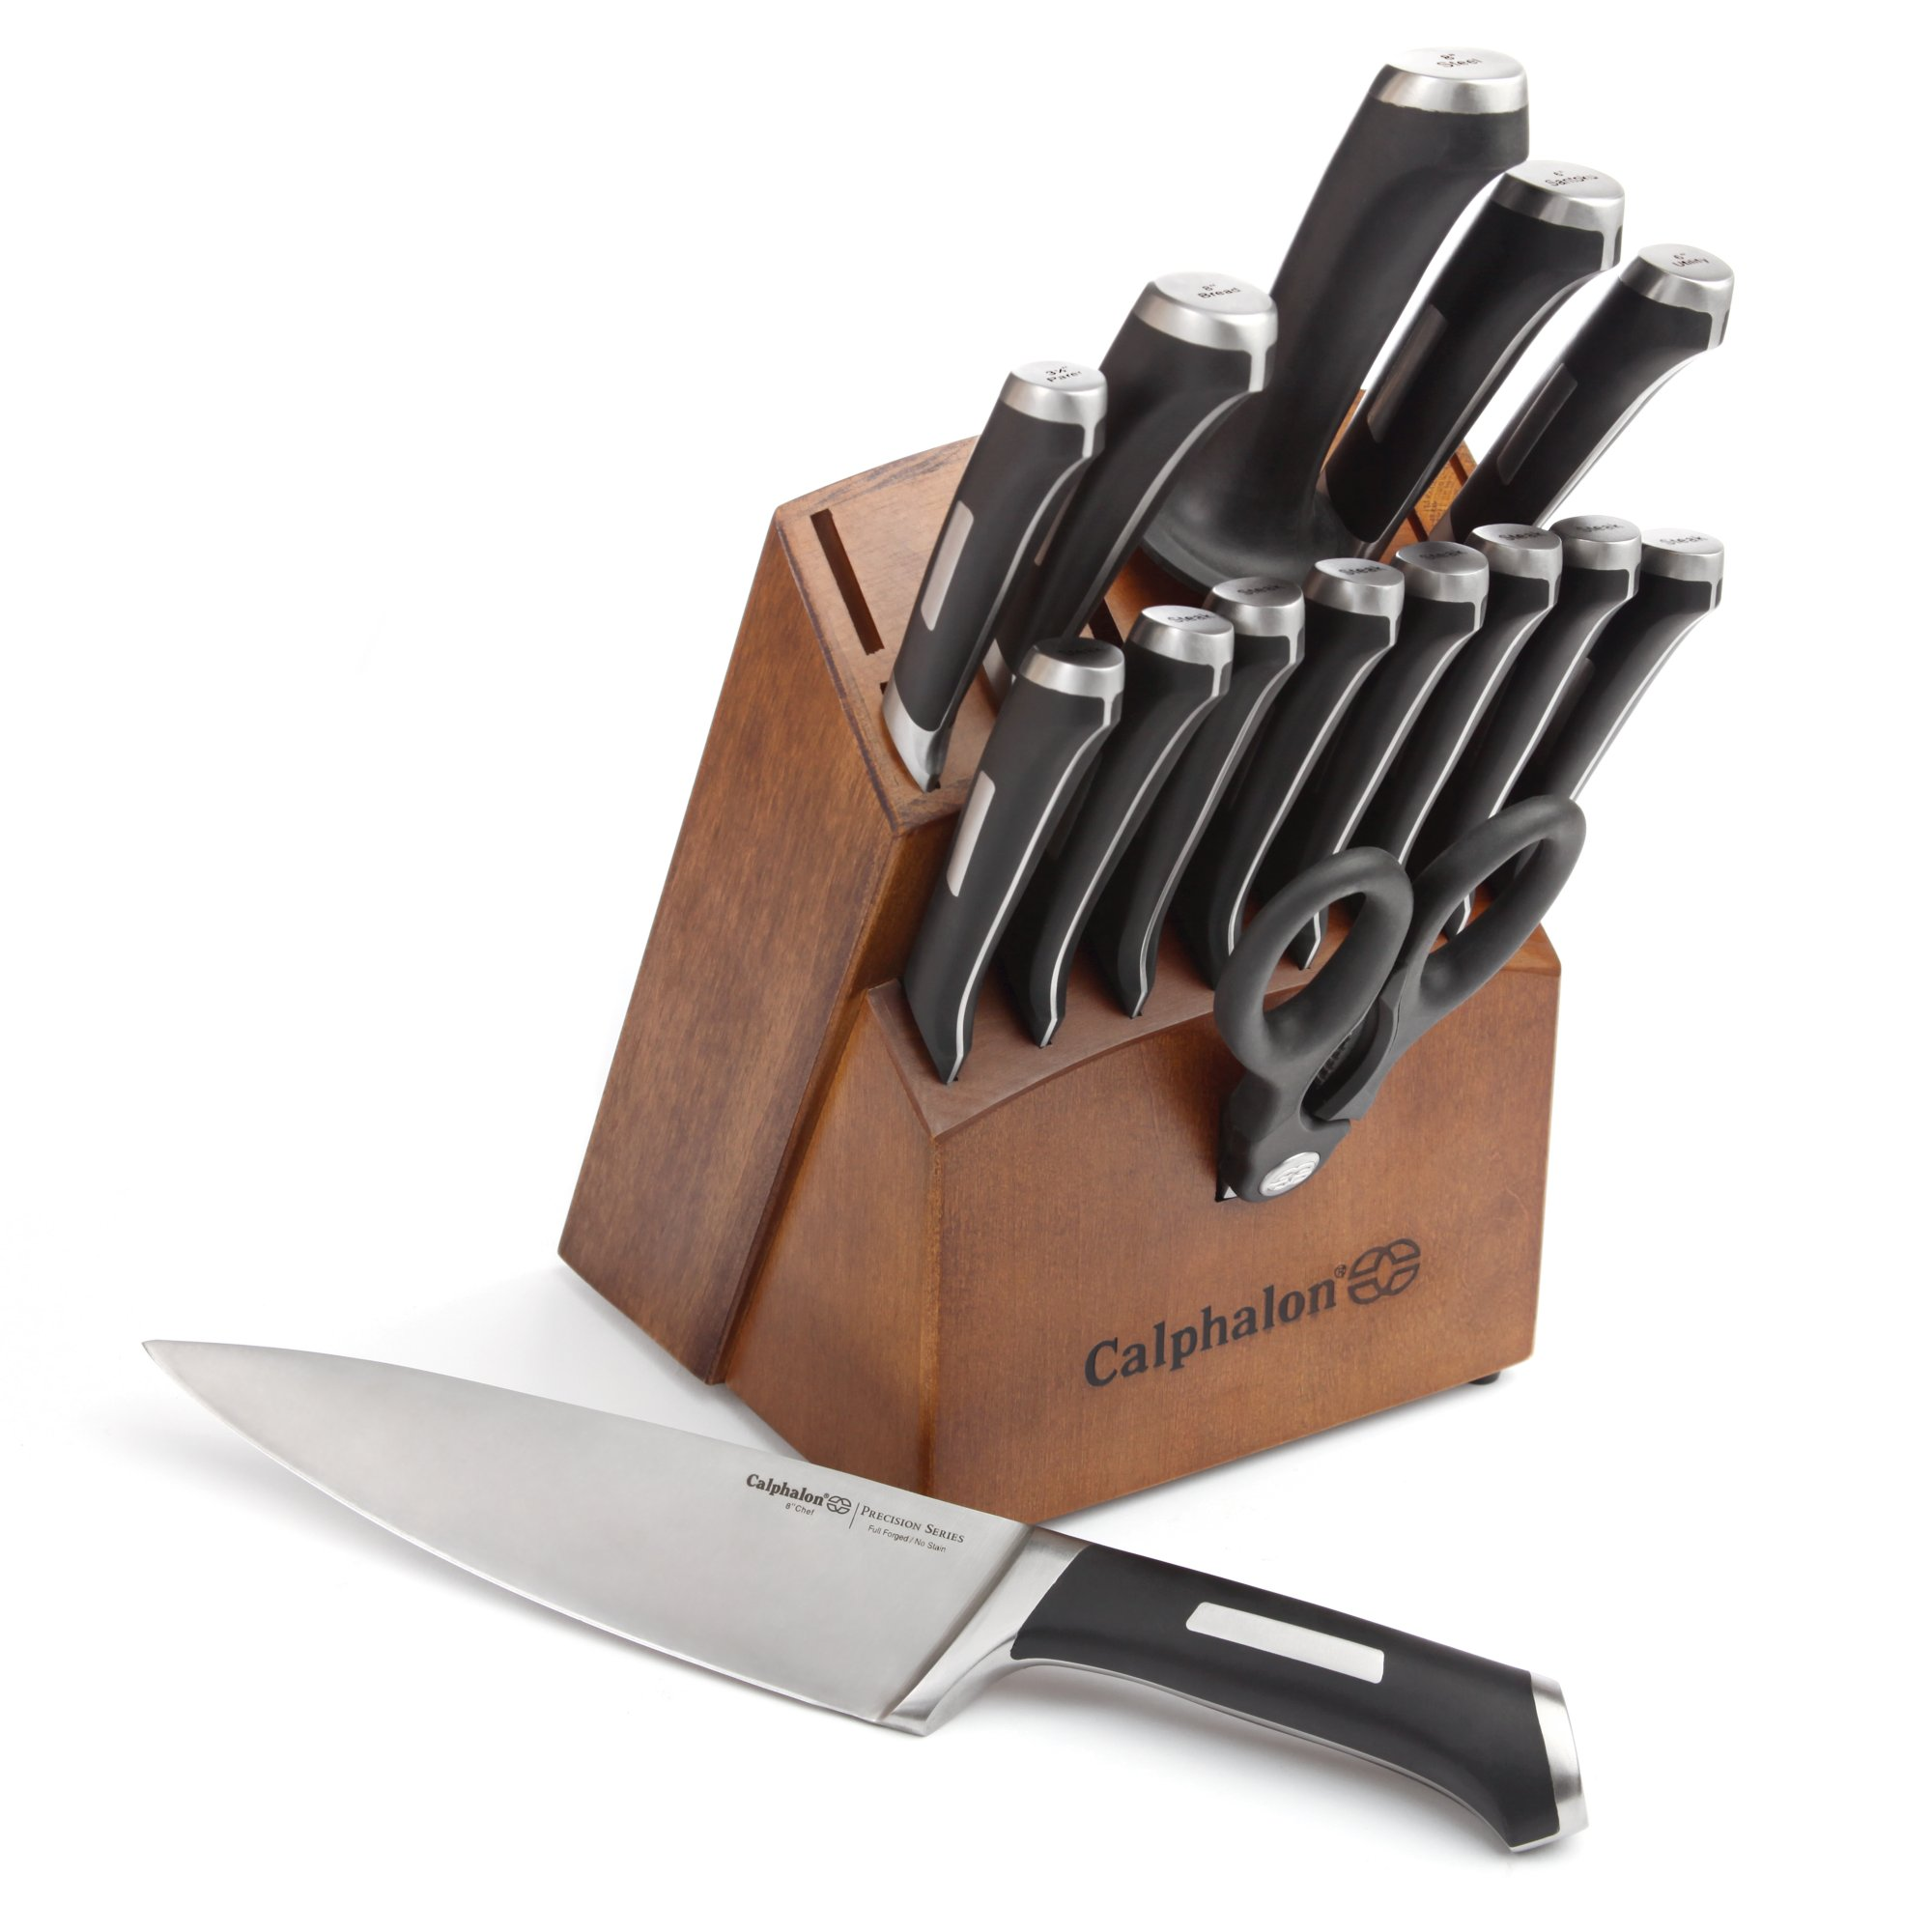 Calphalon Precision Series 16-pc. Cutlery Set